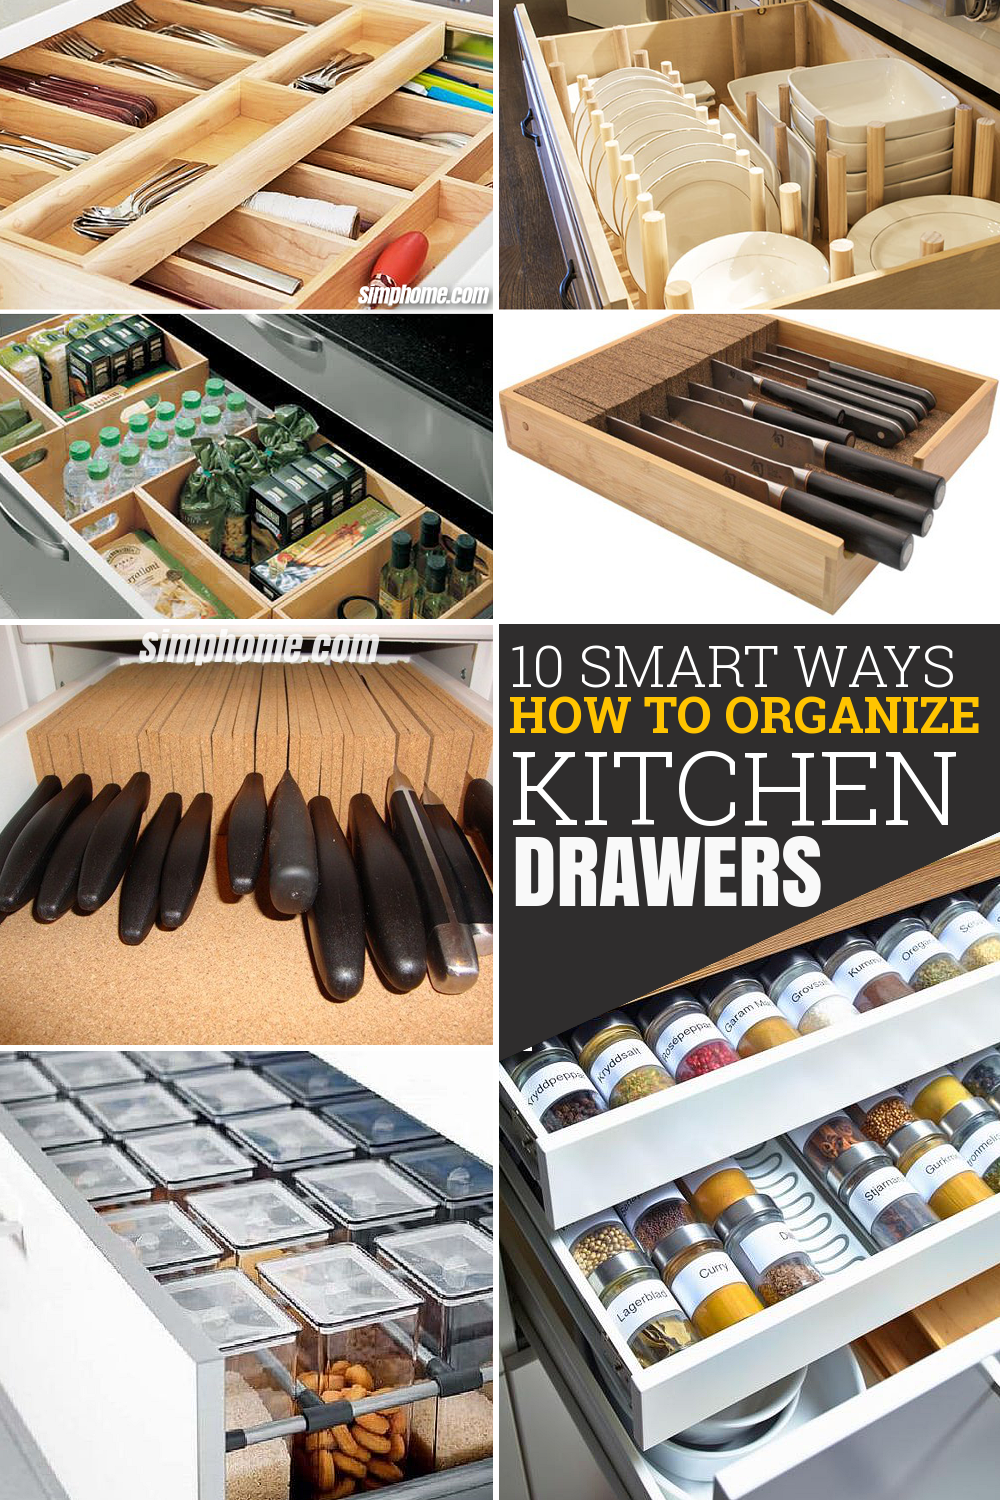 10 Smart ways How to Organize Kitchen Drawers via Simphome com Pinterest image